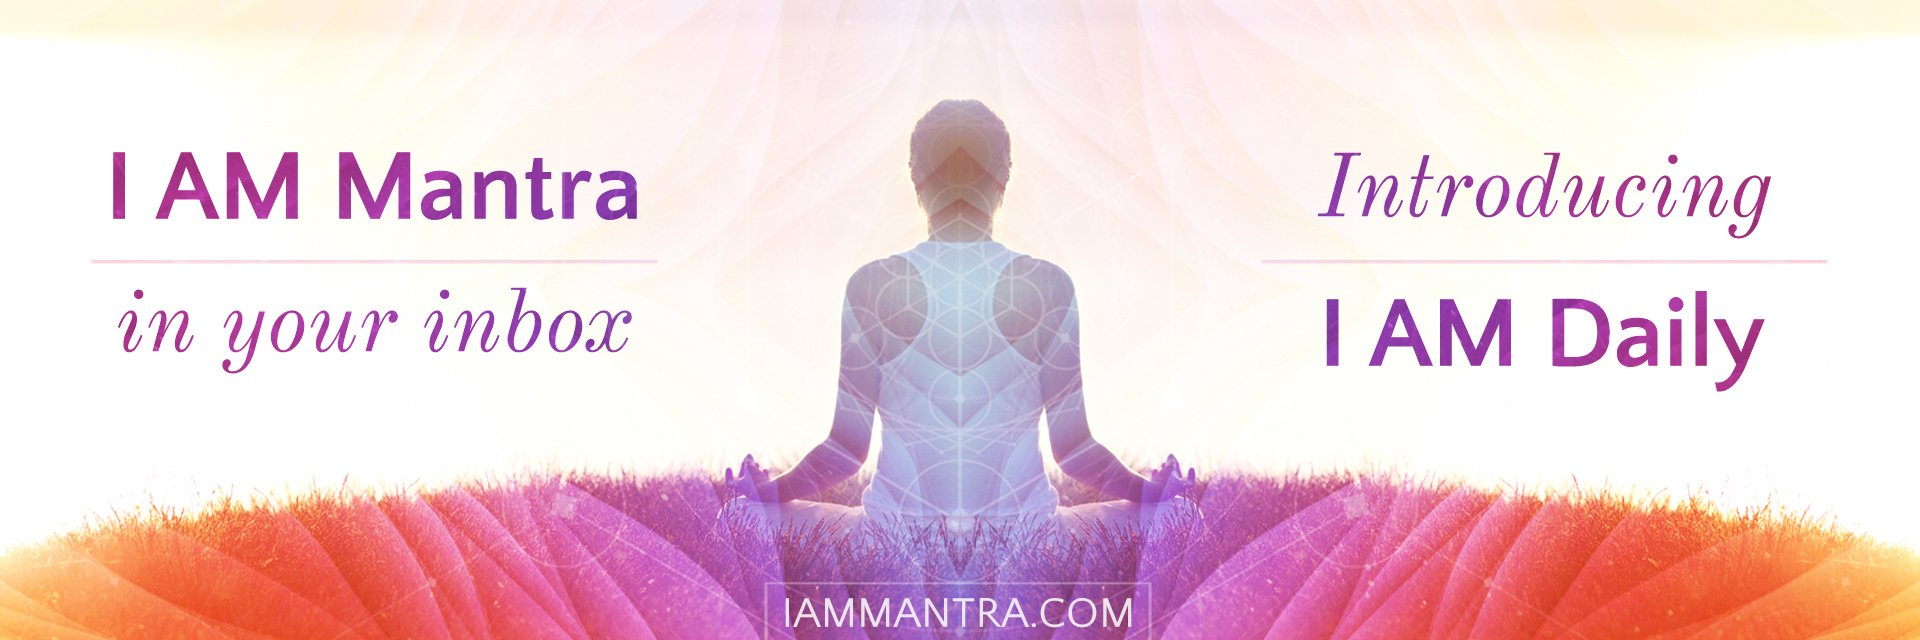 Today's Mantra: I AM changing, growing and evolving into new ways of loving, living and thriving.